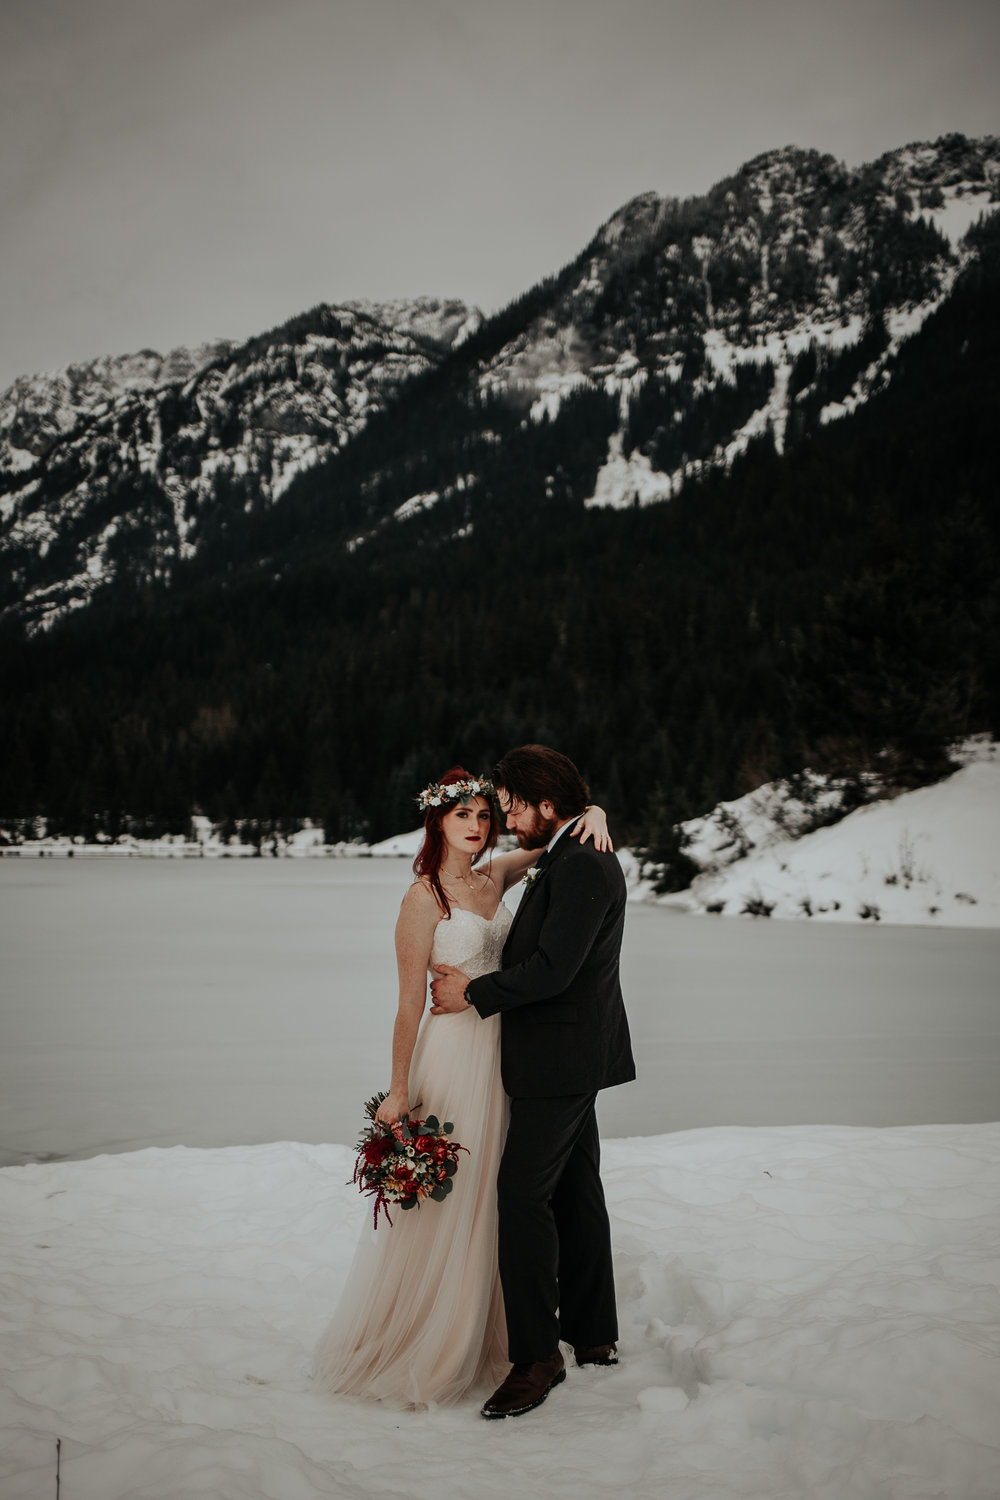 gold-creek-pond-elopement-wedding-megan-gallagher-photography (2 of 195).jpg